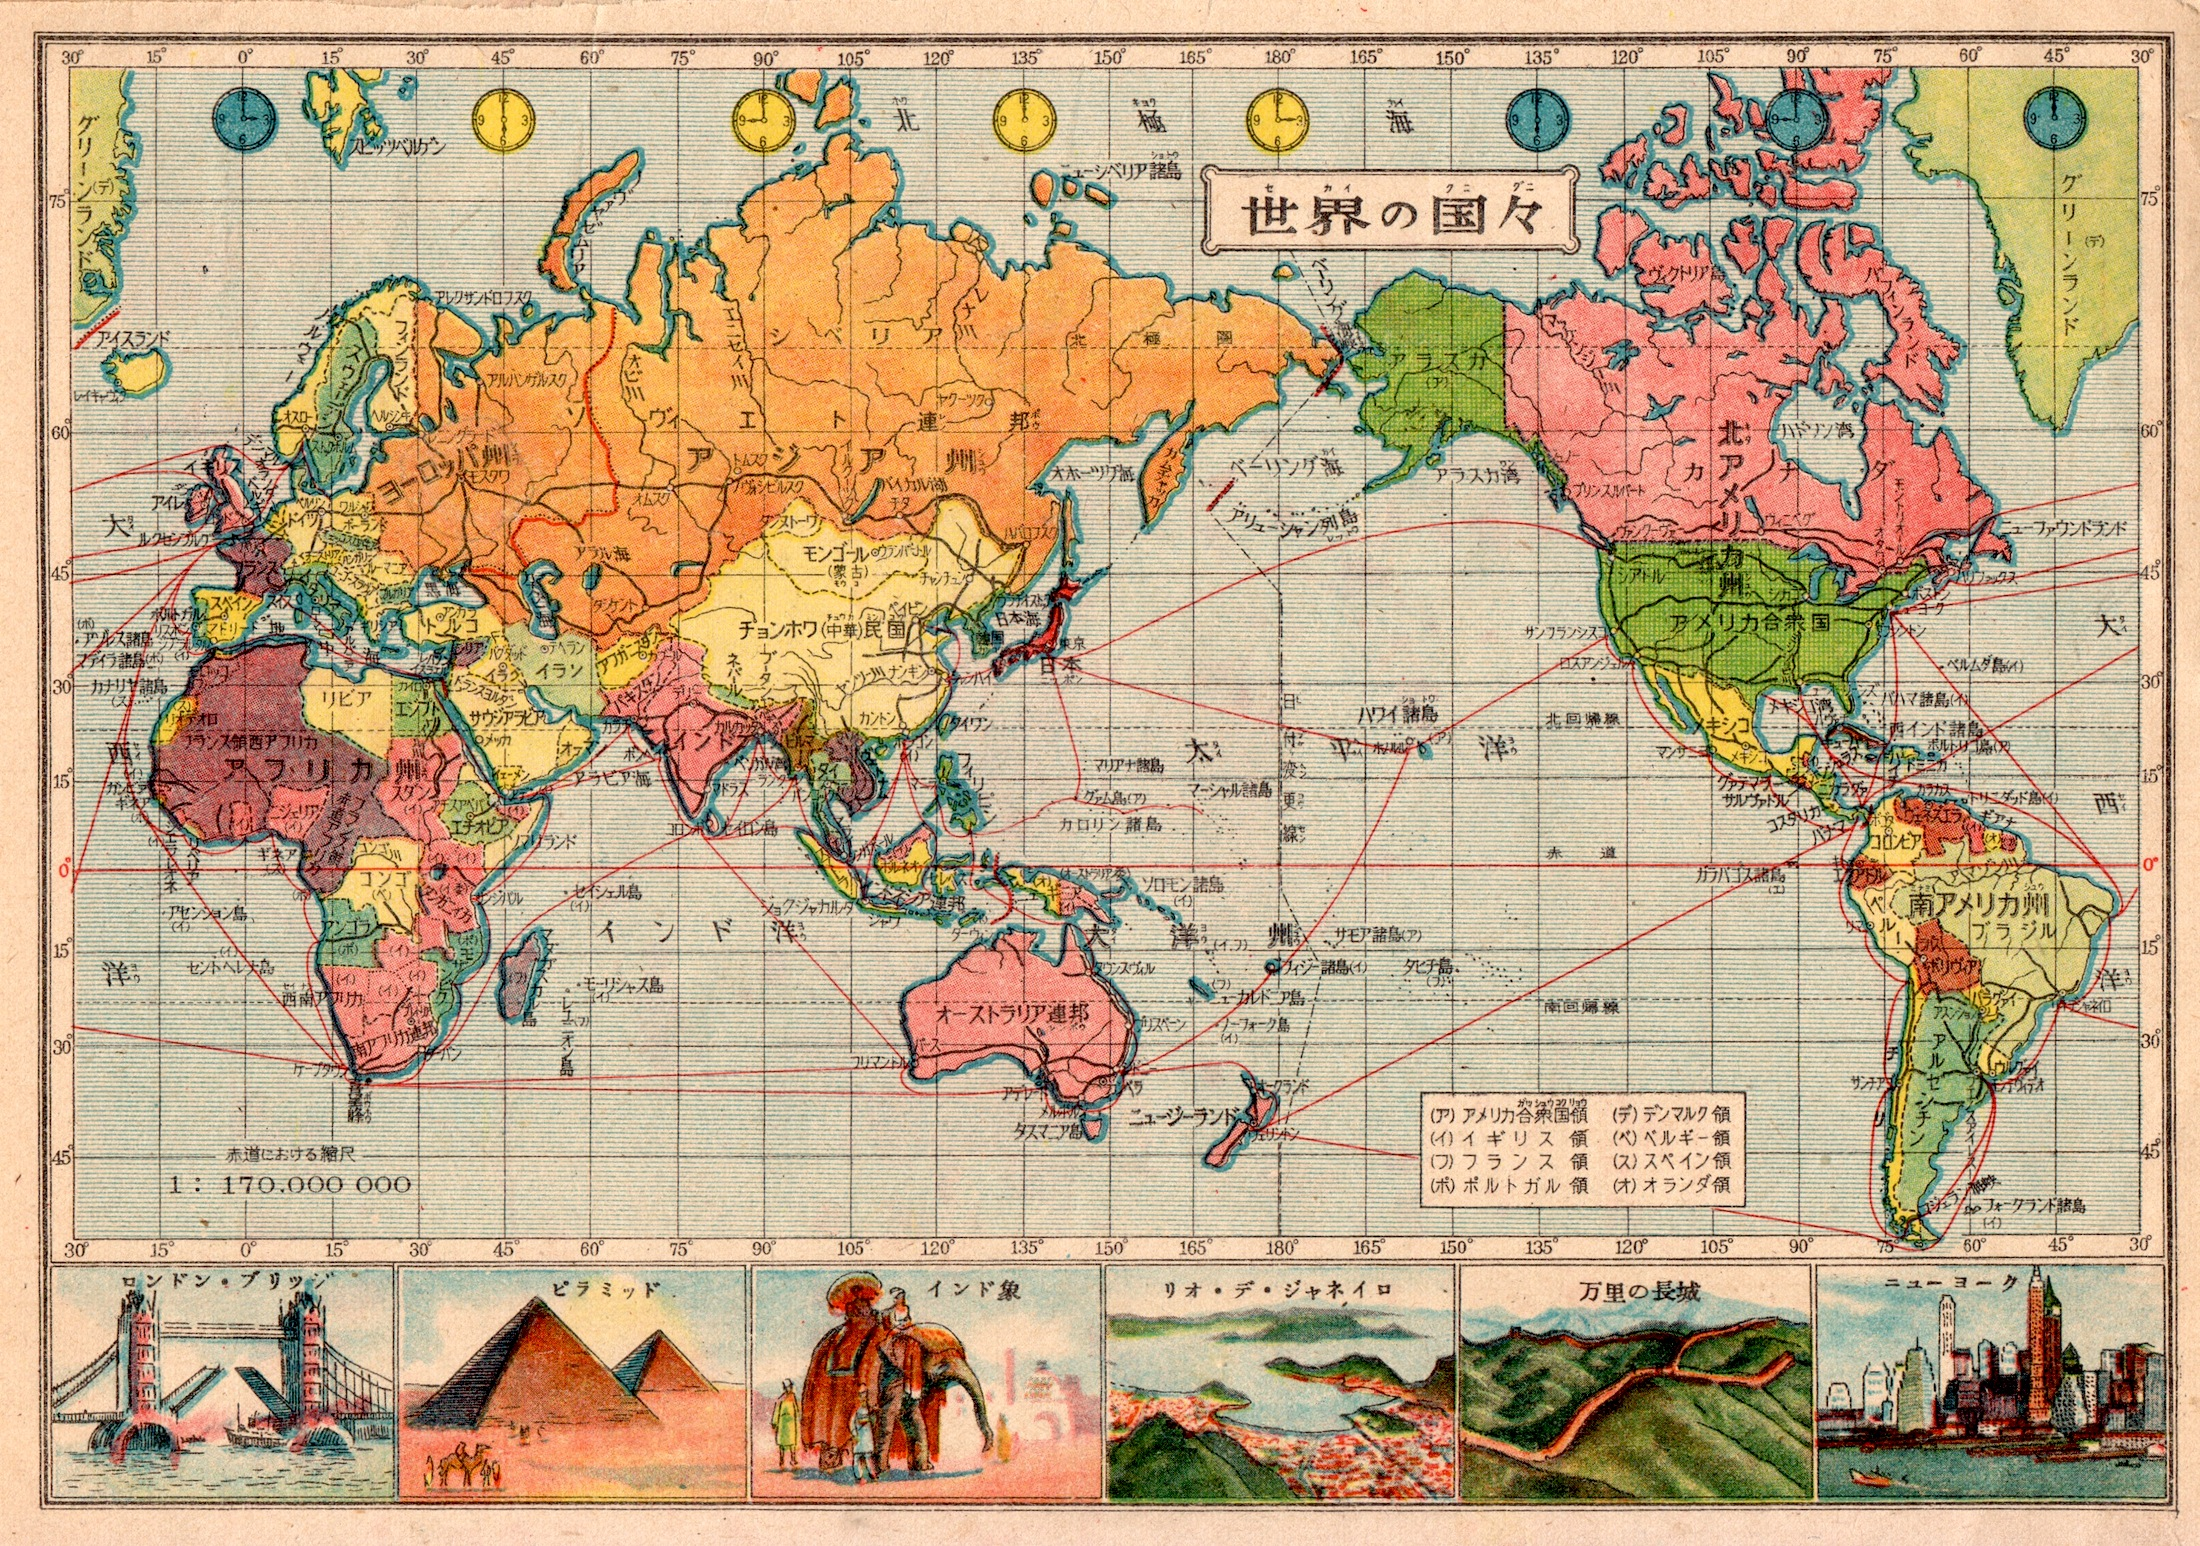 World map on Mercator Projection - Idea Rare Maps on political map of japan, geography of japan, middle ages map of japan, physical map of japan, world war 2 pearl harbor map, printable map of japan, poverty map of japan, flag of japan, japan of japan, global map of japan, topographic map of japan, road maps of japan, outline map of japan, railroad map of japan, map of china and japan, okinawa japan, all map of only japan, india map of japan, world map atlantic ocean, school map of japan,